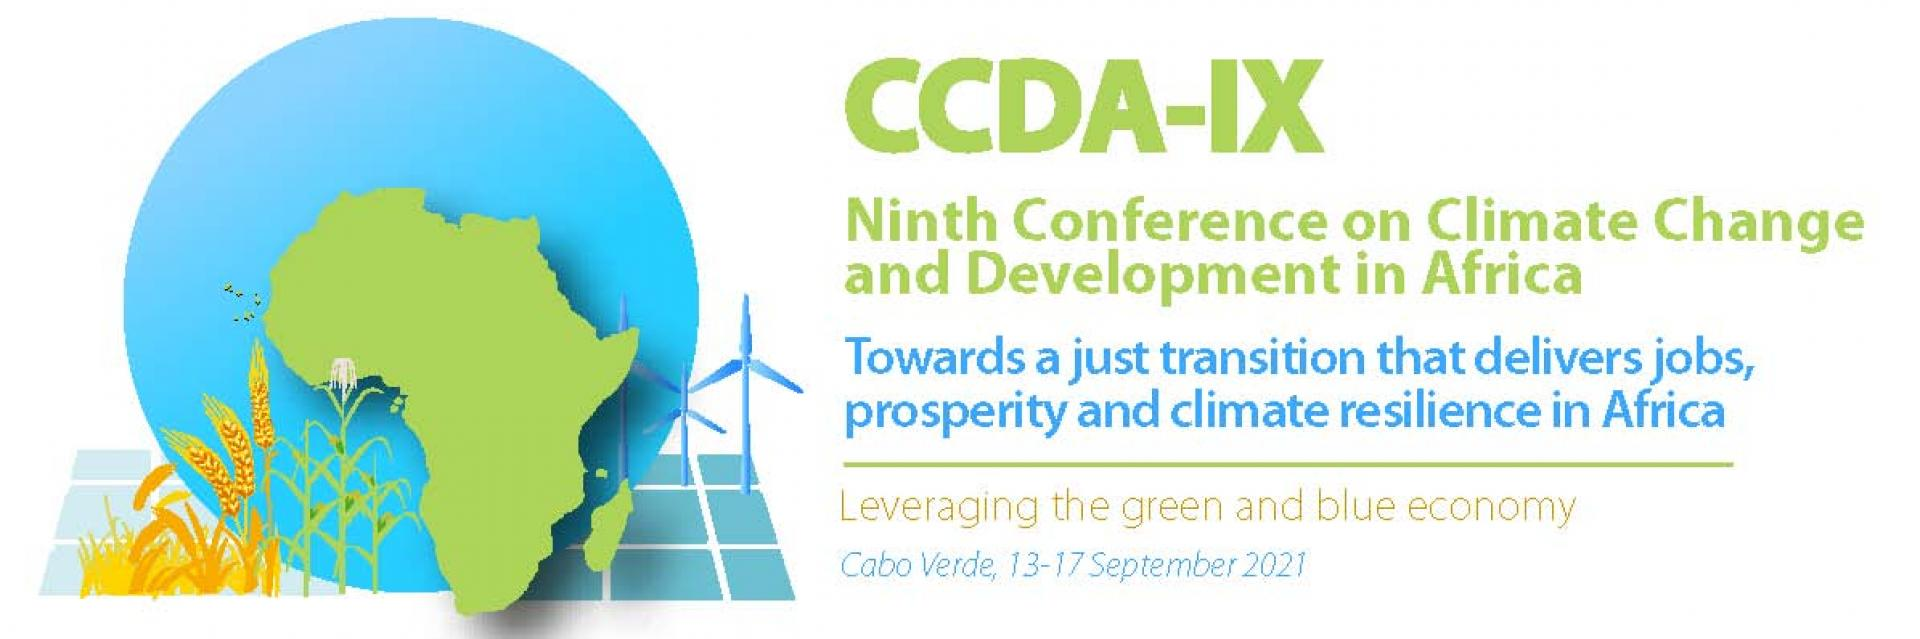 CCDA-9 to bolster Africa's participation at COP26